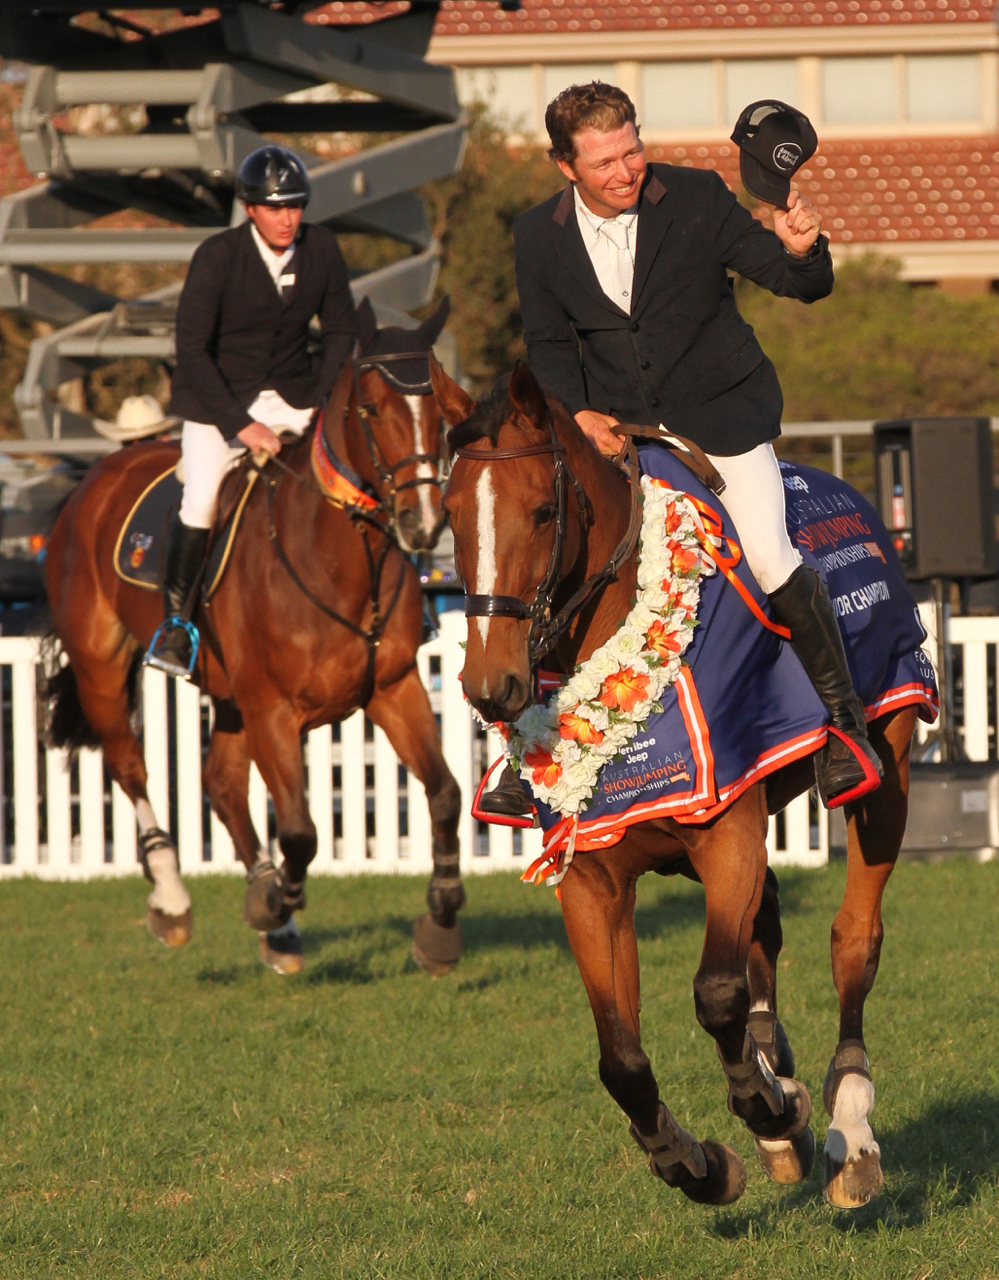 David Cameron - 2x Australian Champion 2014 & 2015World Cup Rider